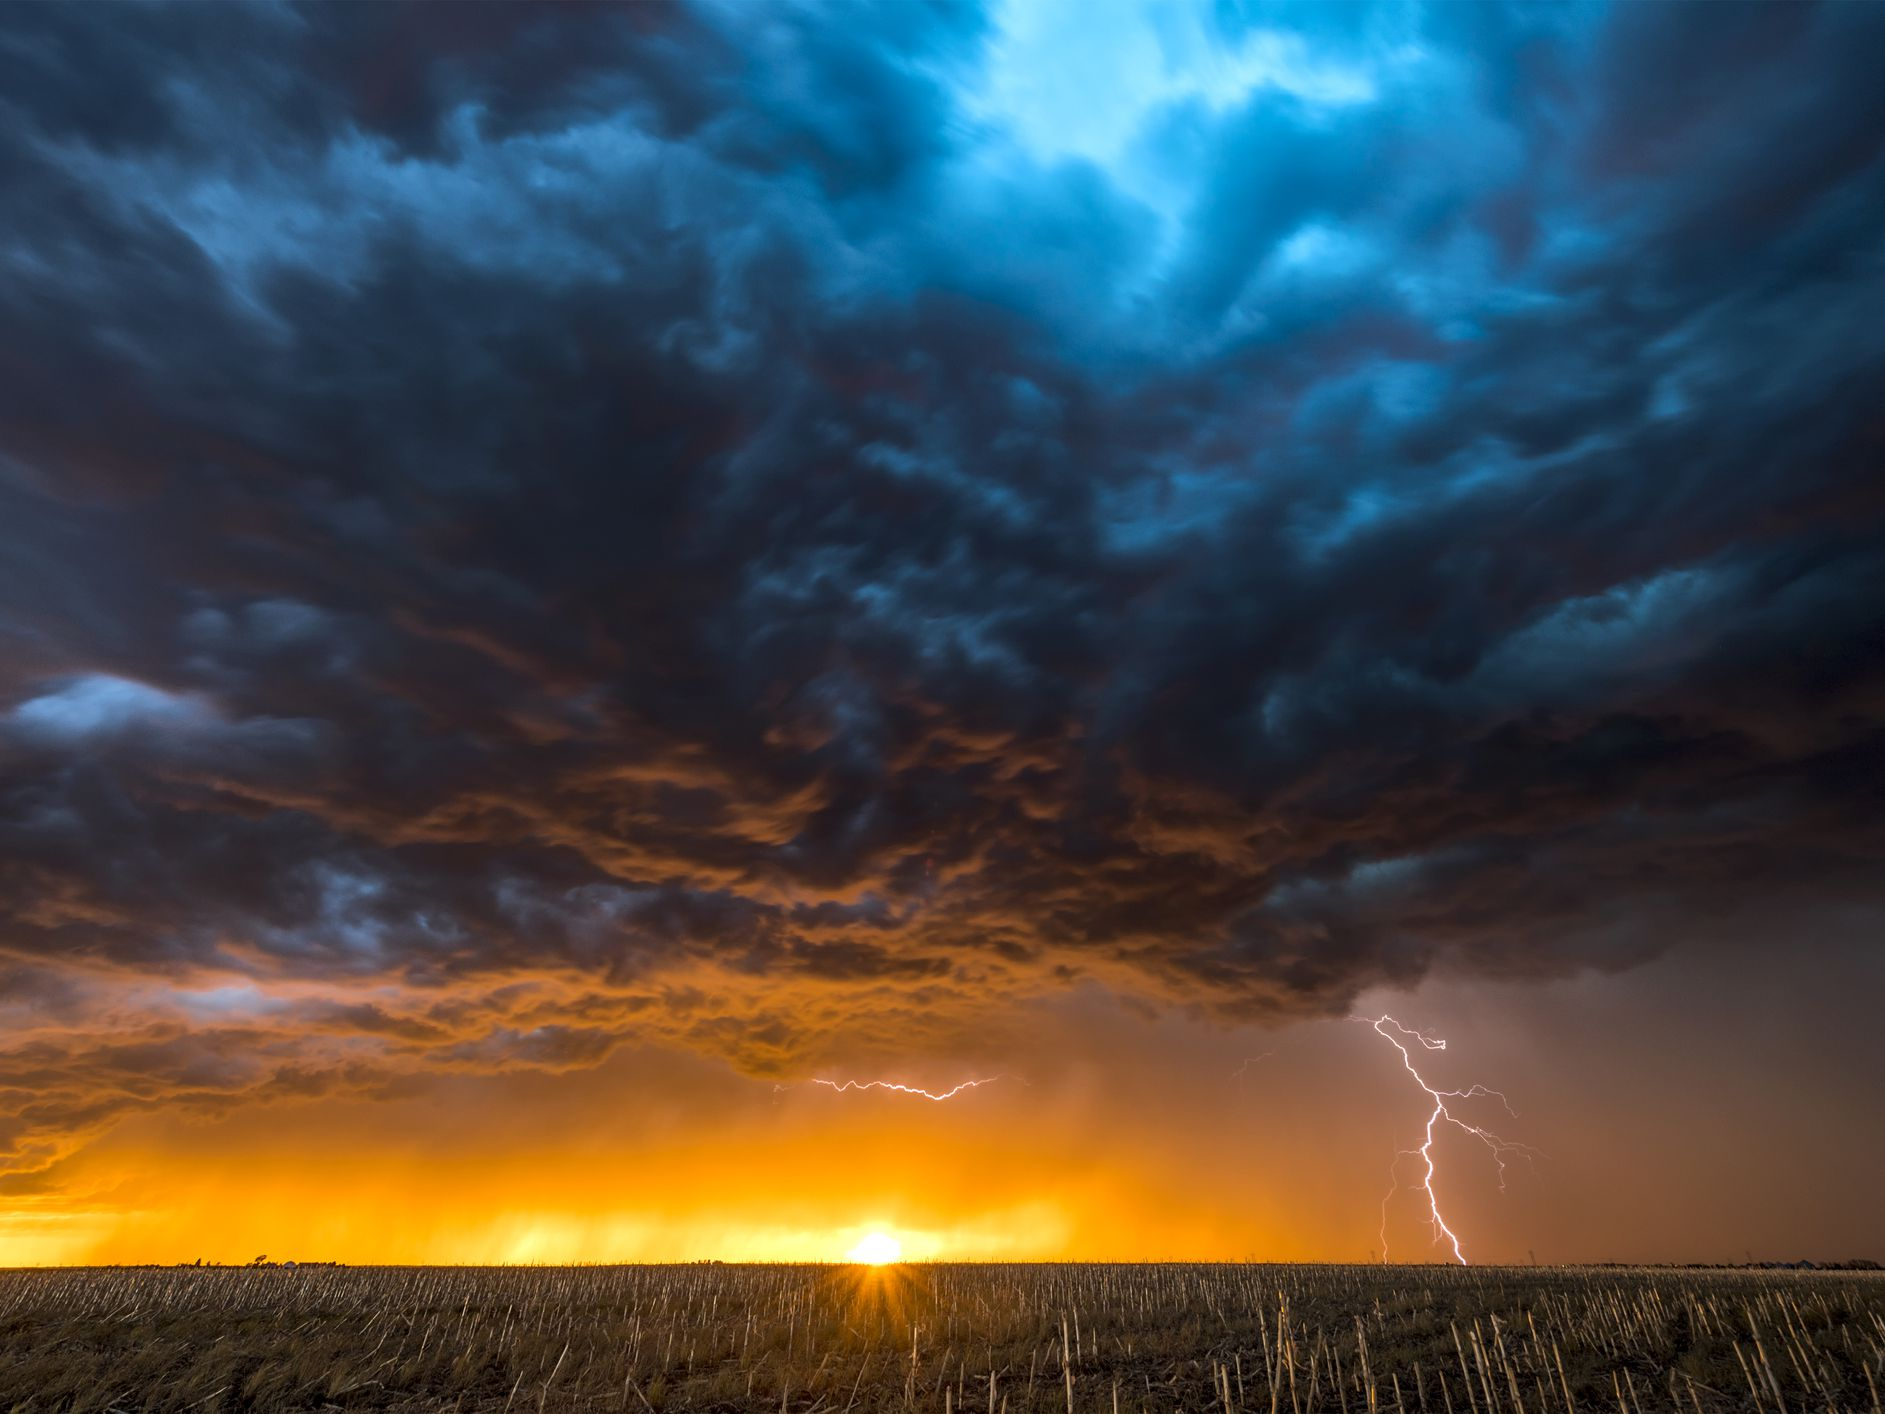 Storm Clouds That Spell Severe Weather